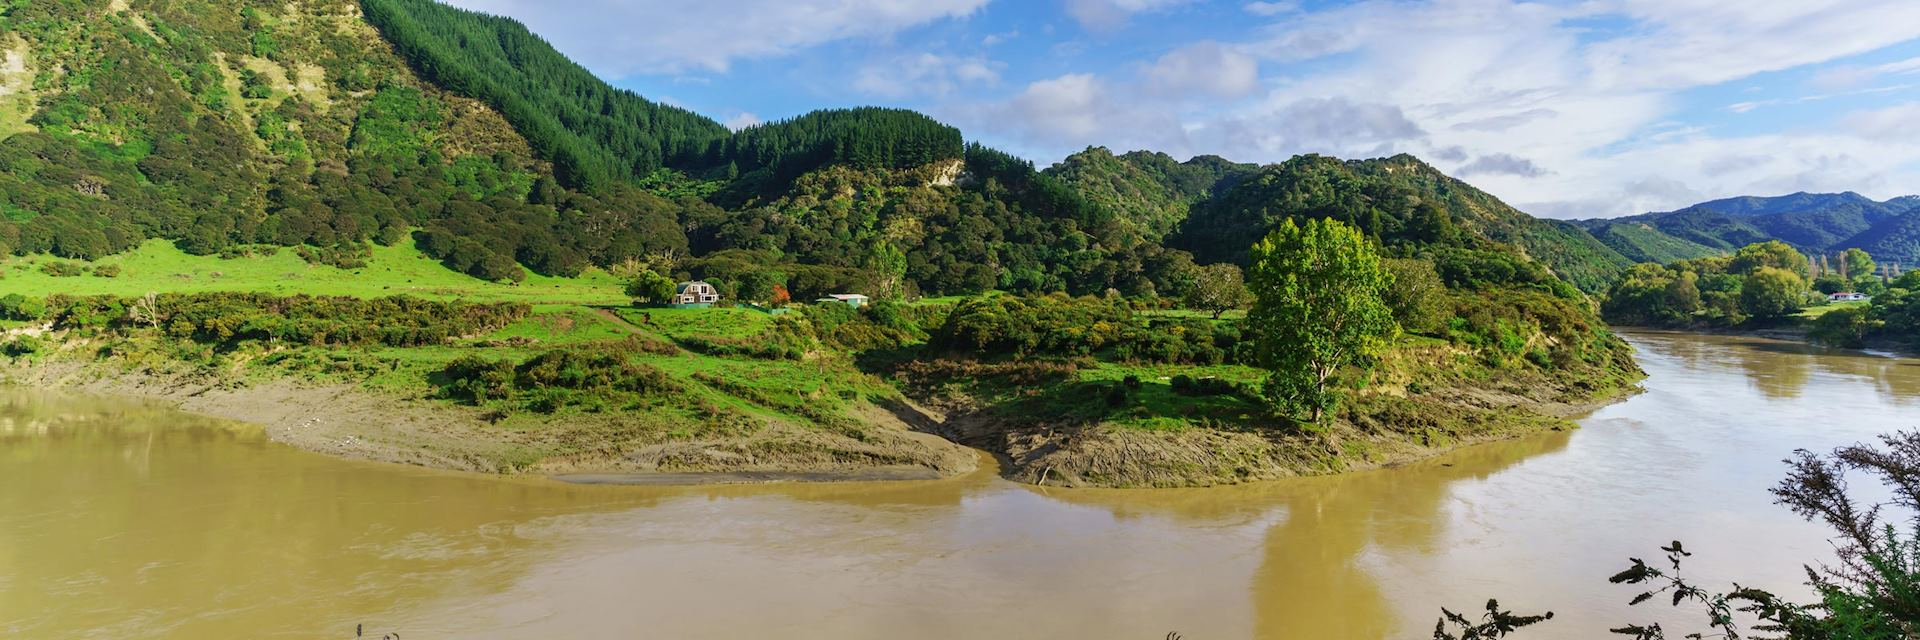 Whanganui National Park, New Zealand